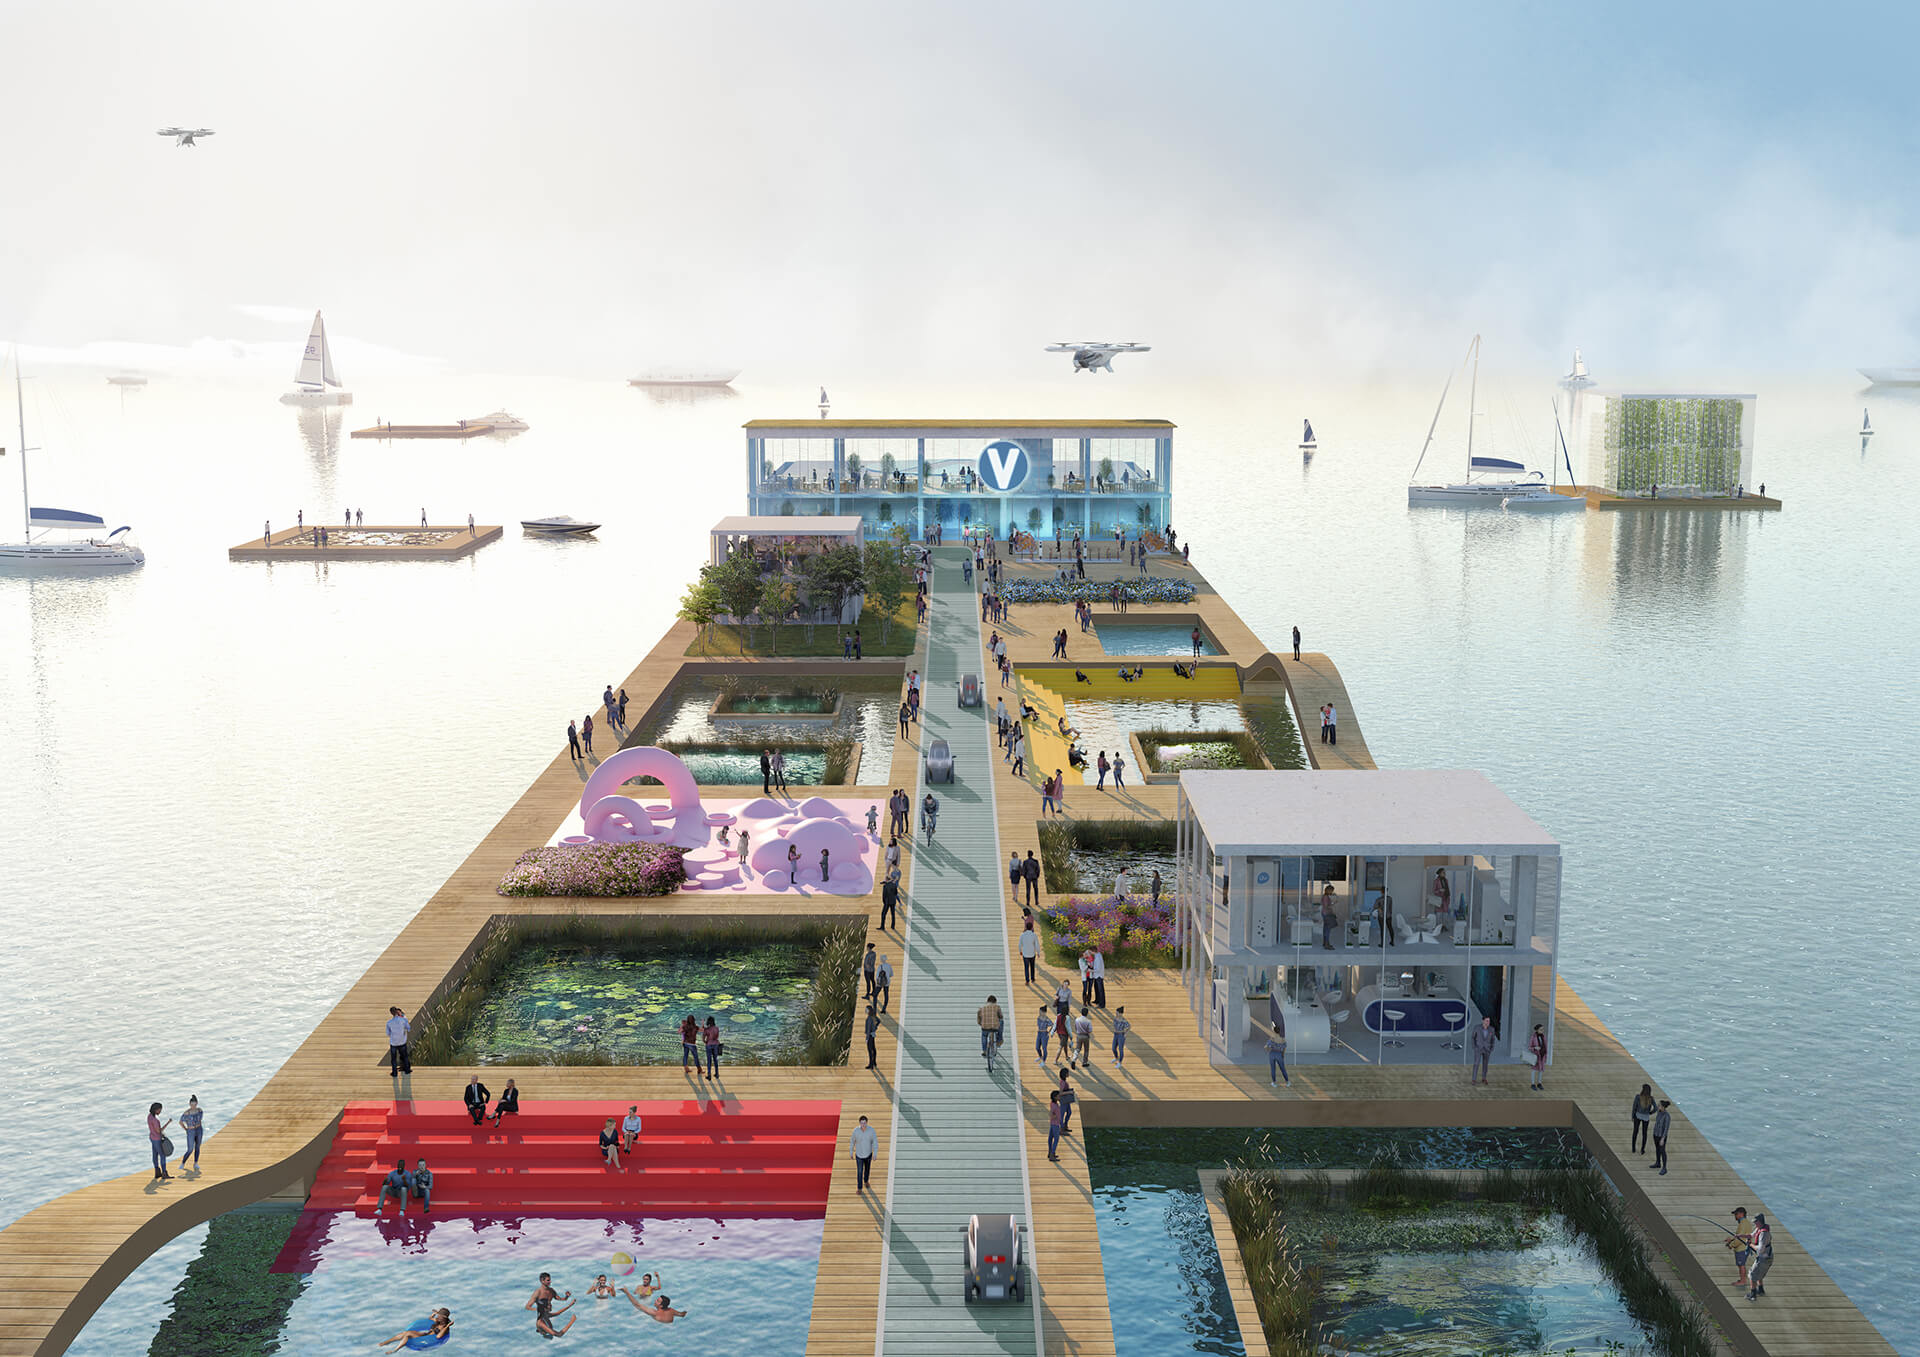 Promoting accessibility between disconnected areas, Jakarta | Airbus | MVRDV | STIRworld